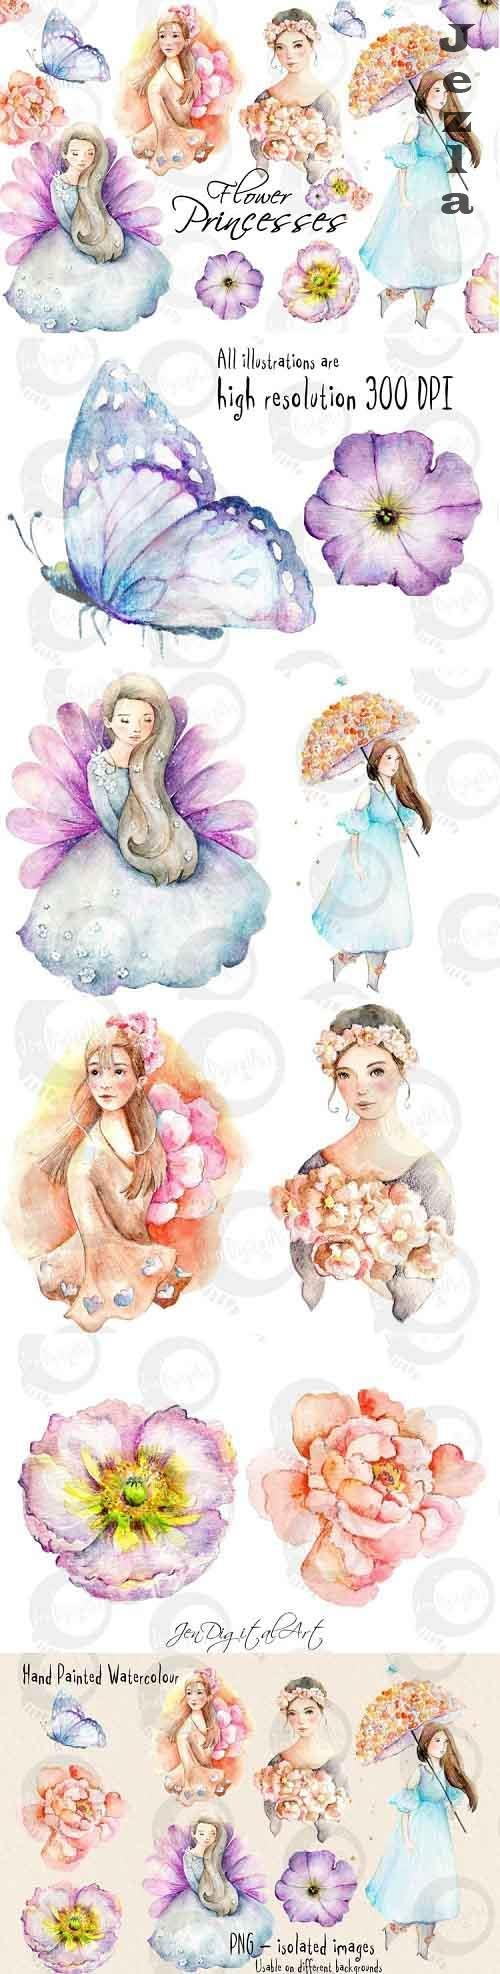 Flower Princesses | Watercolor Illustrations - 1022232